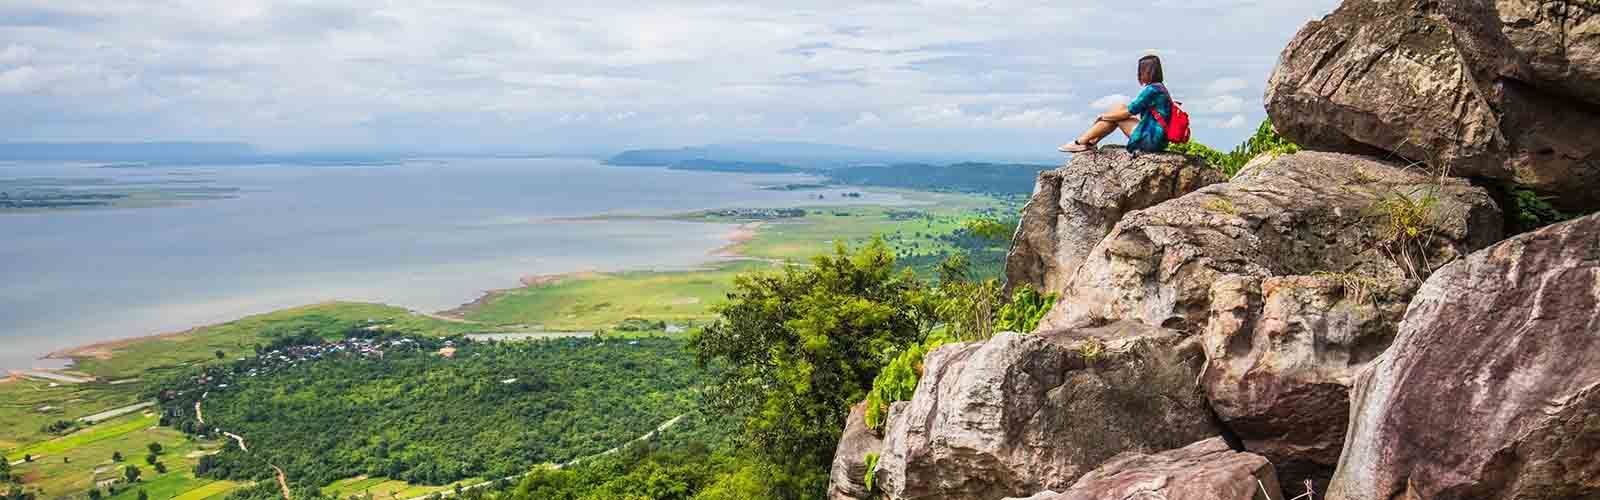 Khon Kaen Travel Guide | Asianventure Tours